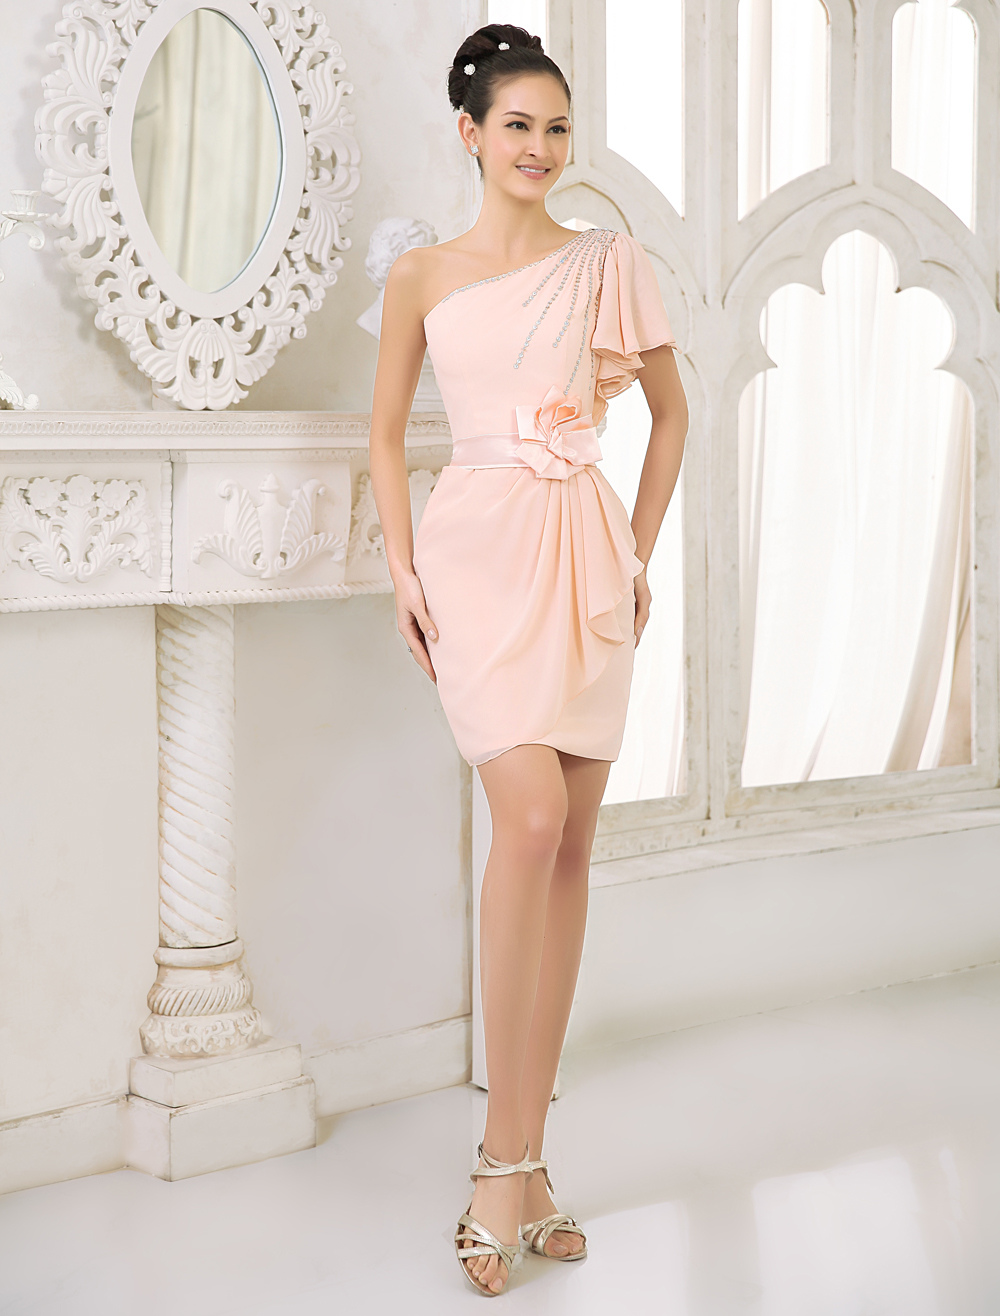 Blush Pink Peach Bridesmaid Dress Chiffon Beaded Cocktail Dress One Shoulder Ruffled Sheath Short Party Dress Milanoo